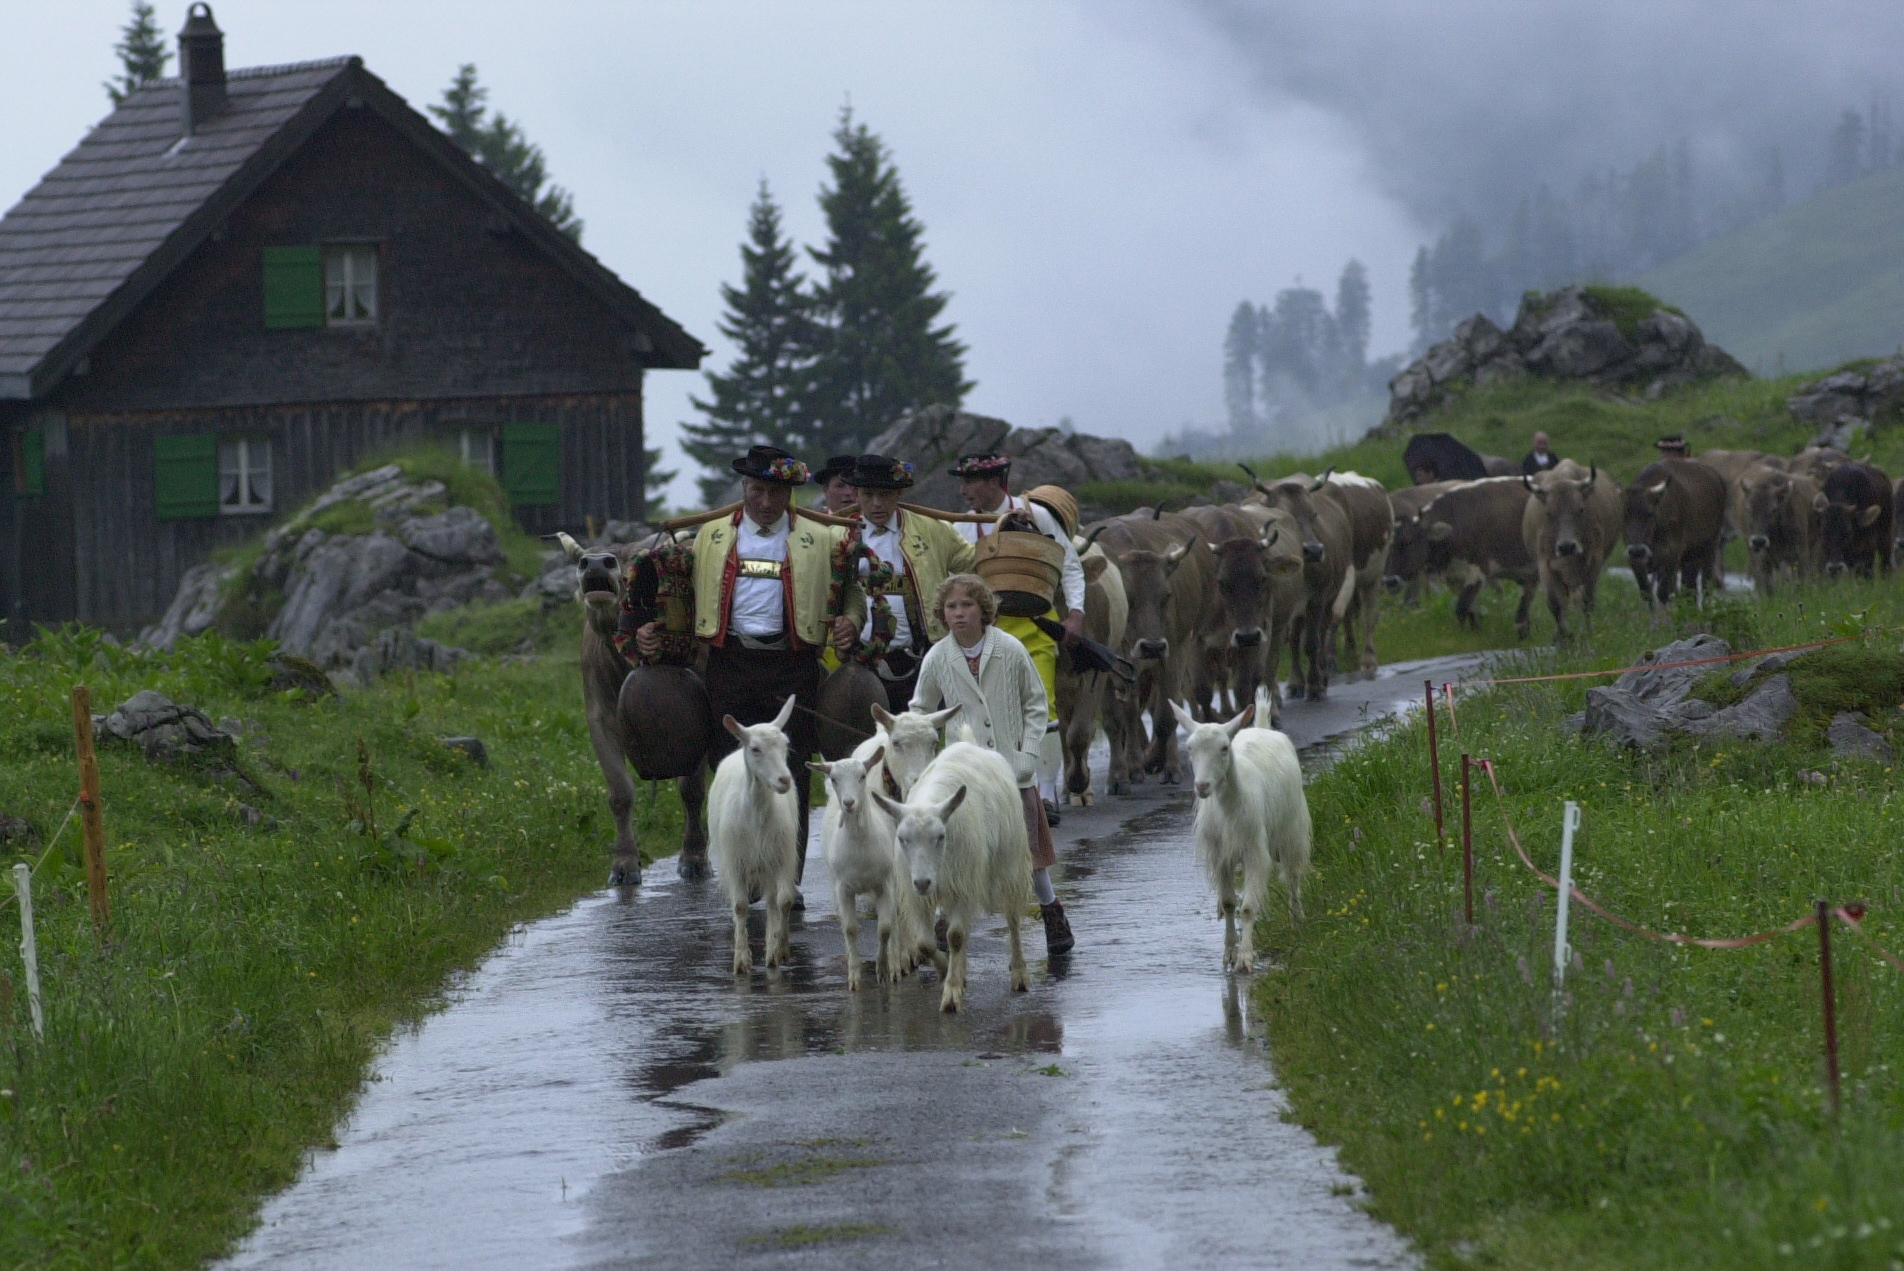 Schwägalp ascent: The procession goes on even if it rains © Hans Hürlemann, Urnäsch, 2001